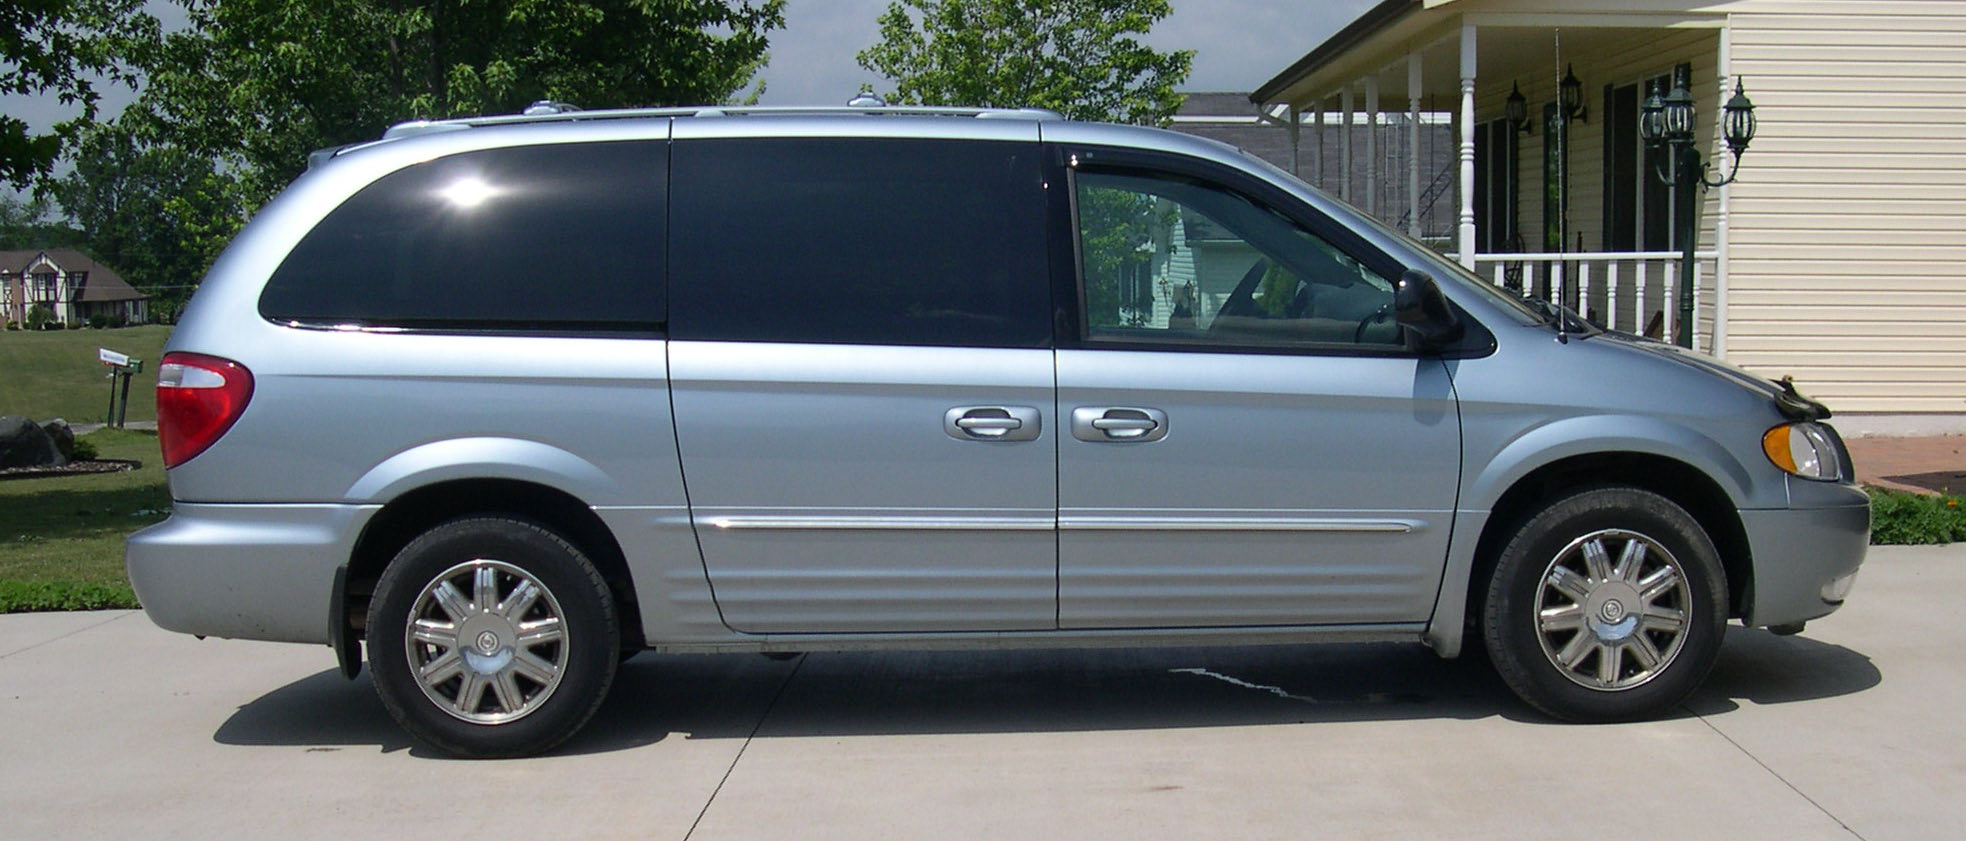 2004 chrysler town and country mpg